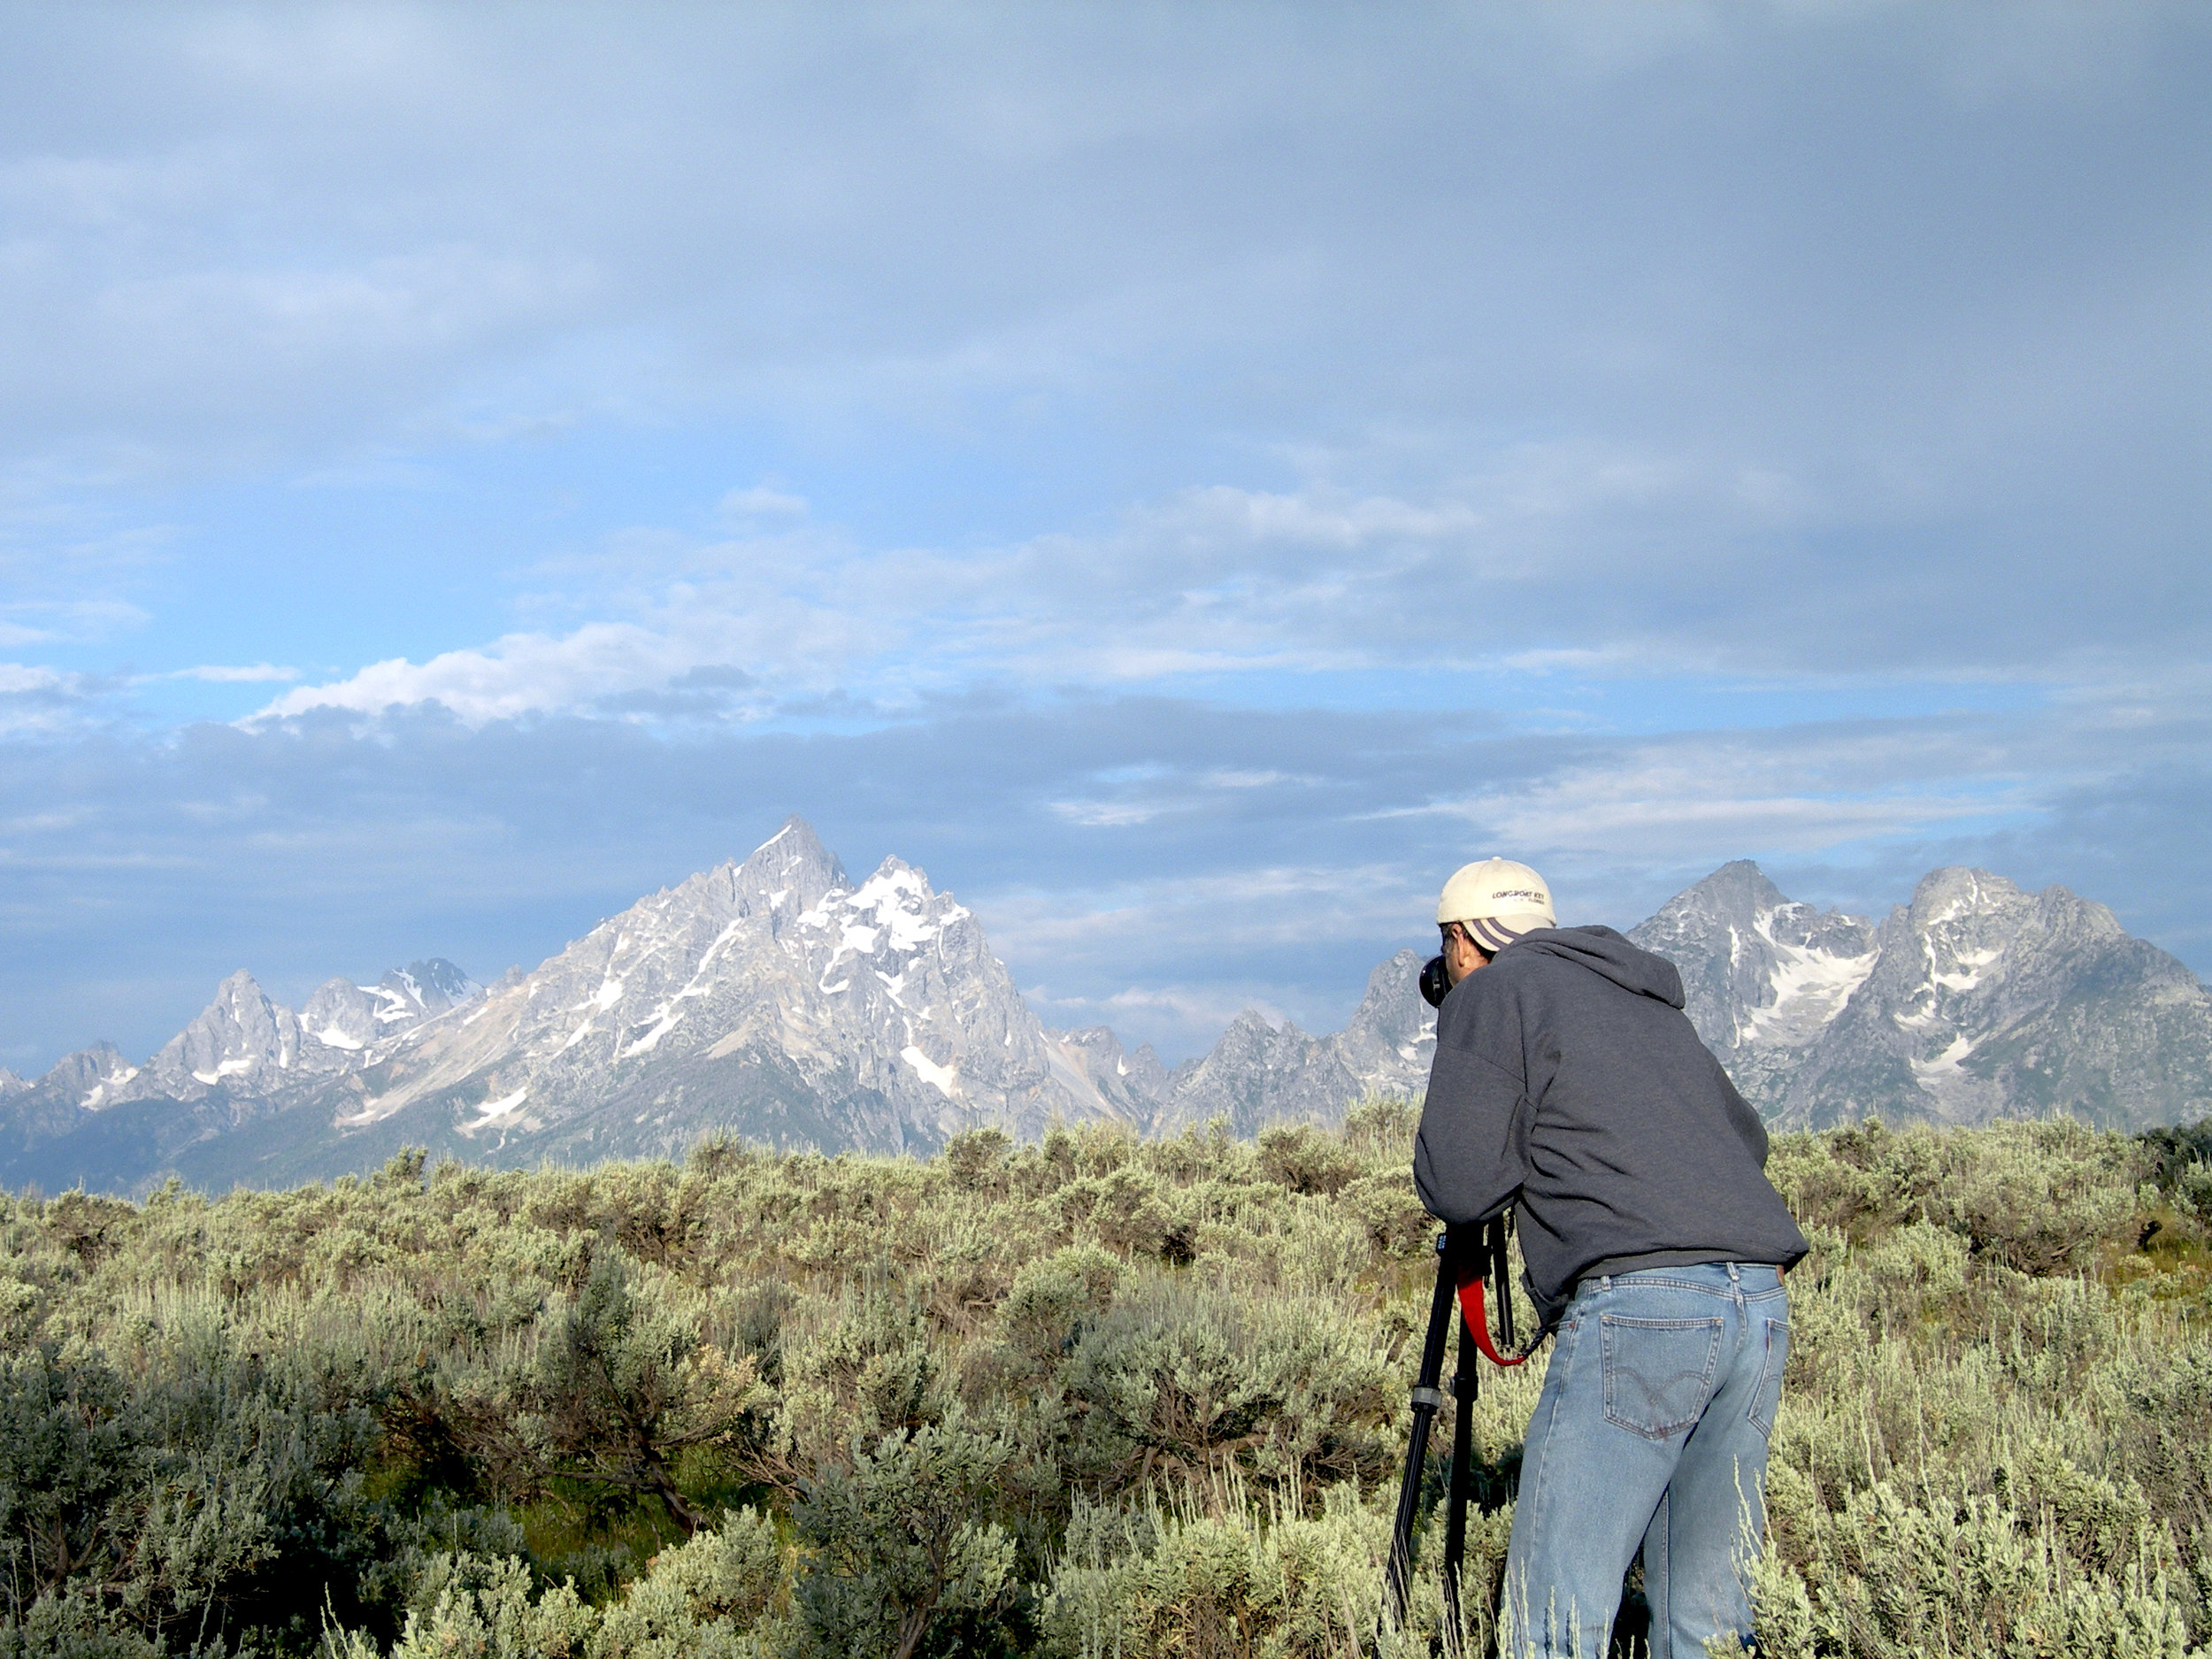 Lewin photographing the Tetons in 2012 - Photo by Anne Lewin